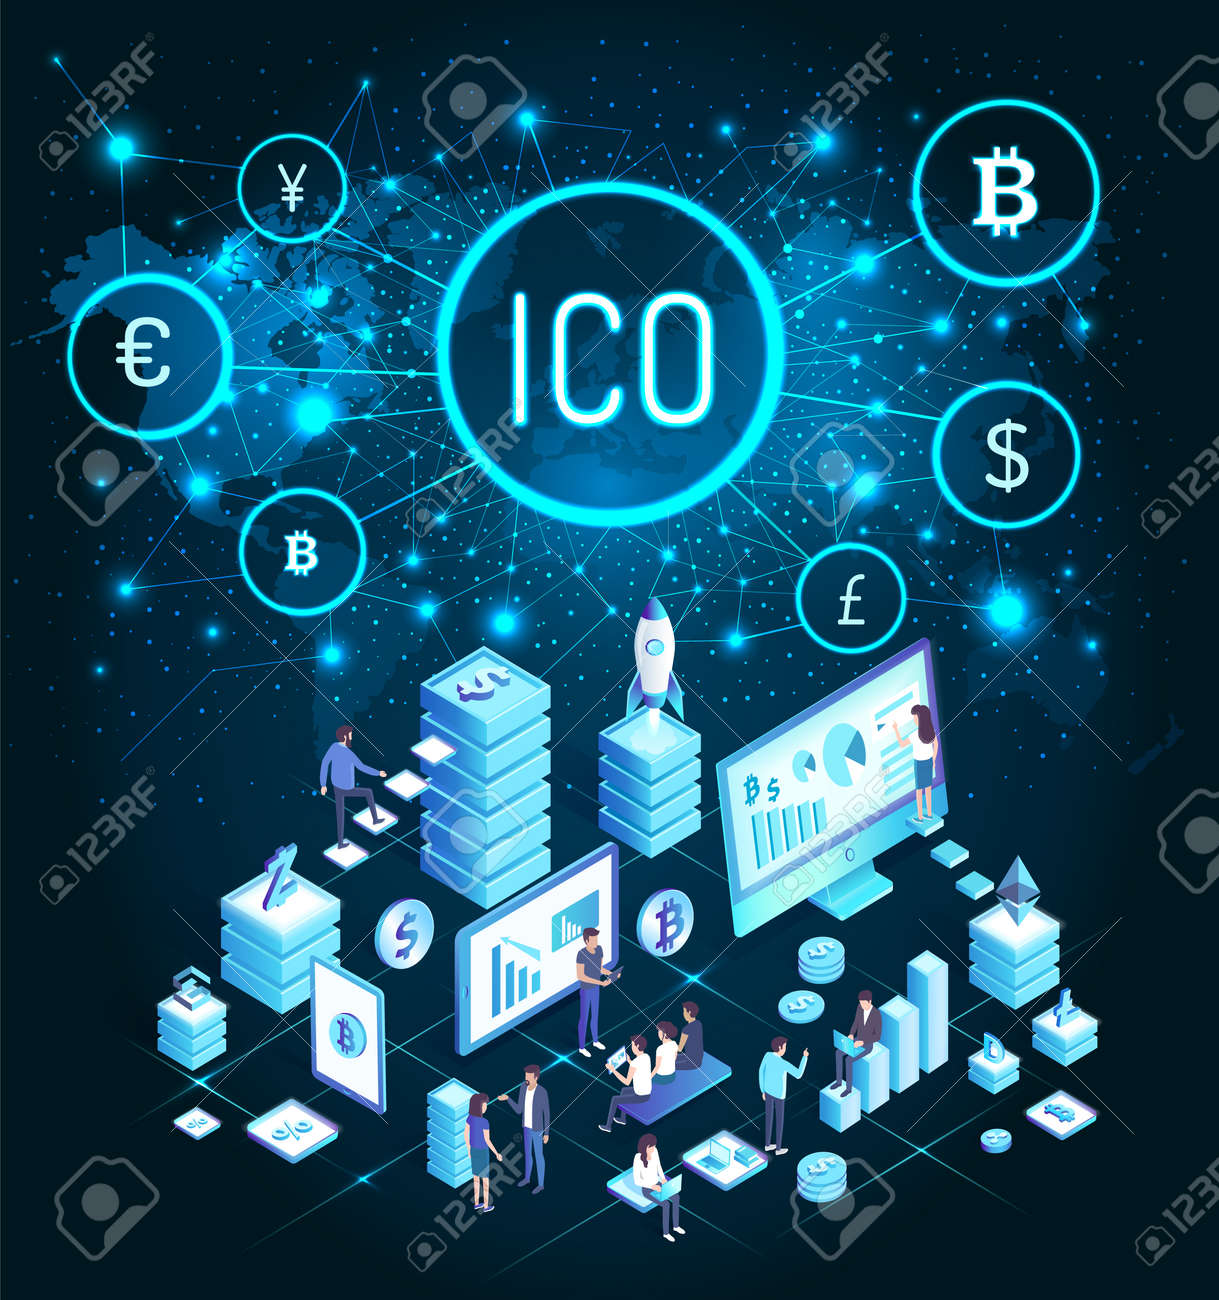 what is a cryptocurrency ico